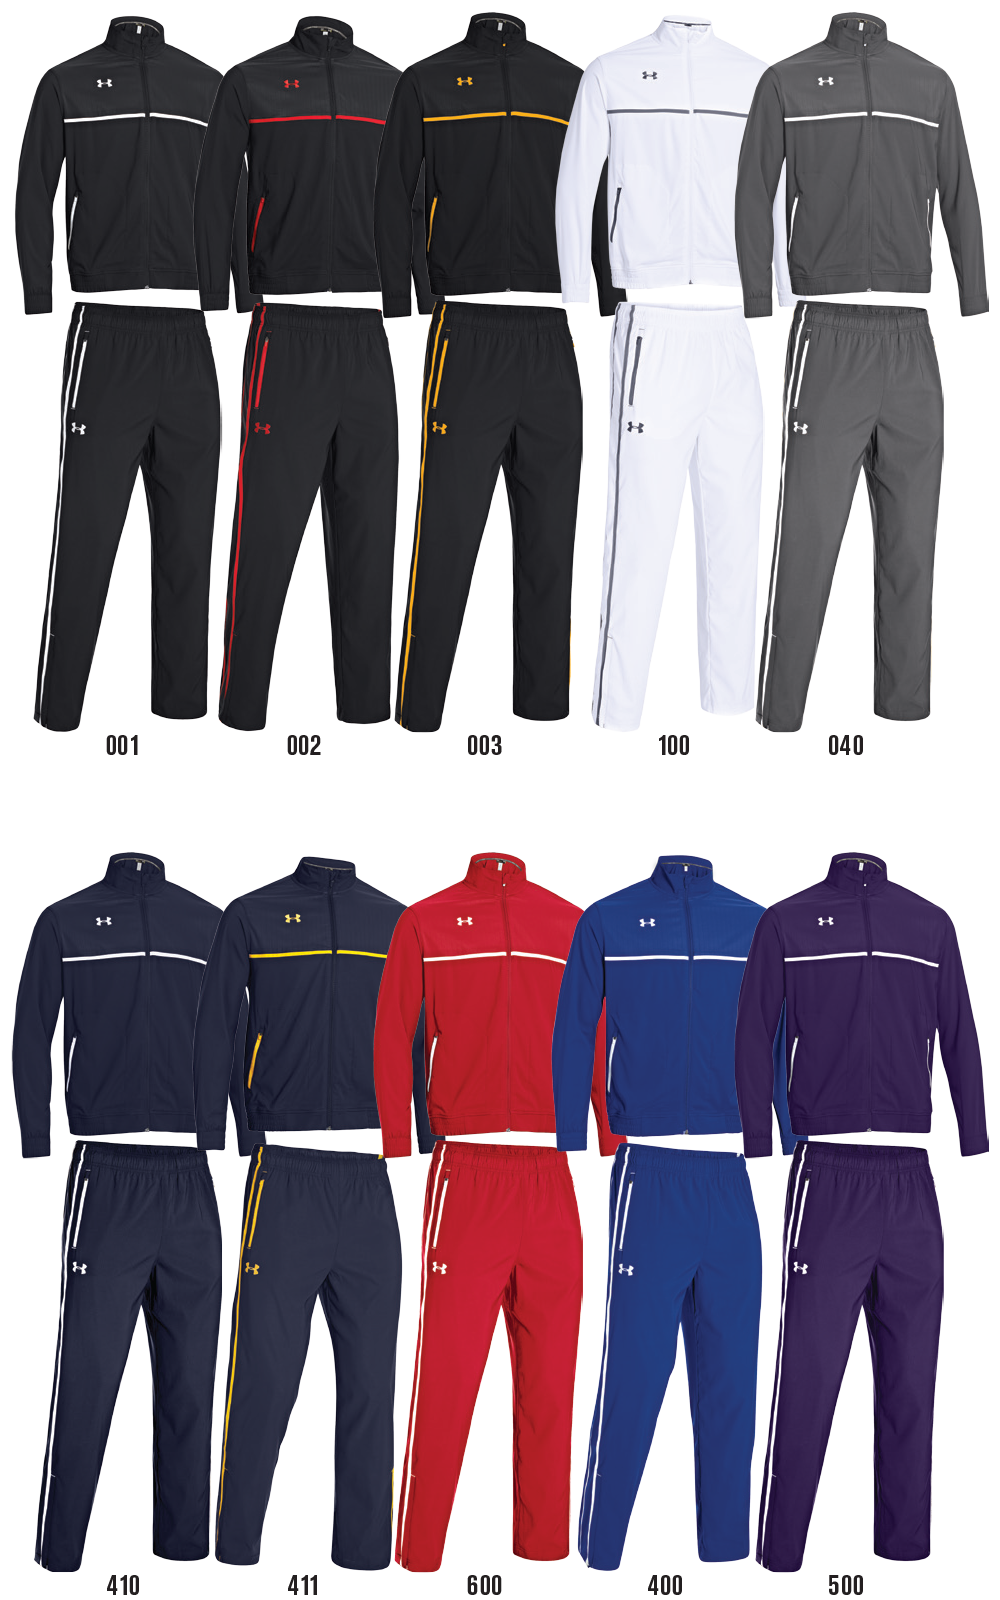 under-armour-win-it-custom-team-warm-ups.png